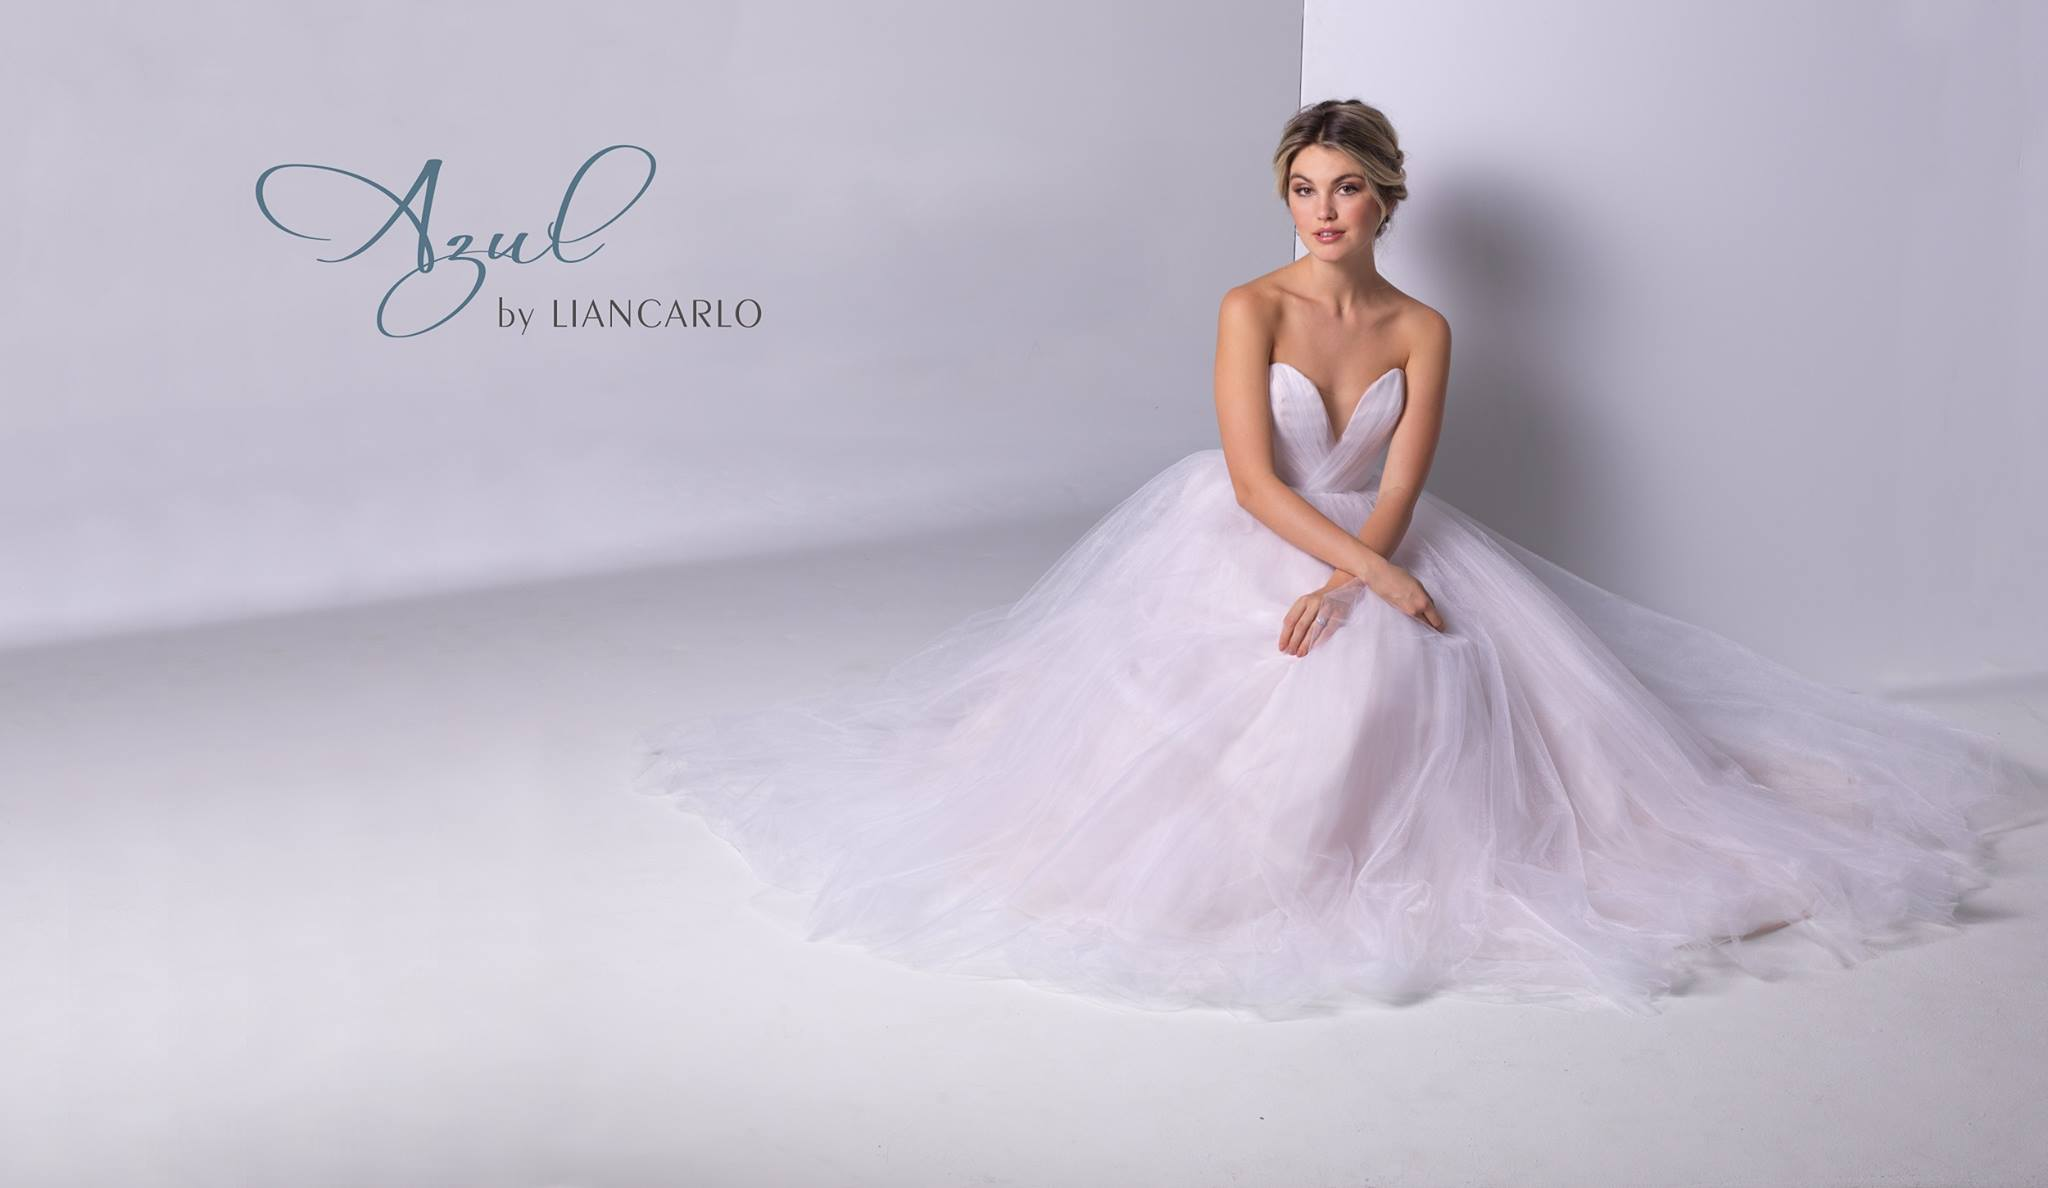 Azul by Liancarlo Tulle Strapless Sweetheart Princess Ballgown Wedding Dress Tampa Florida Bridal Shop Plus Size